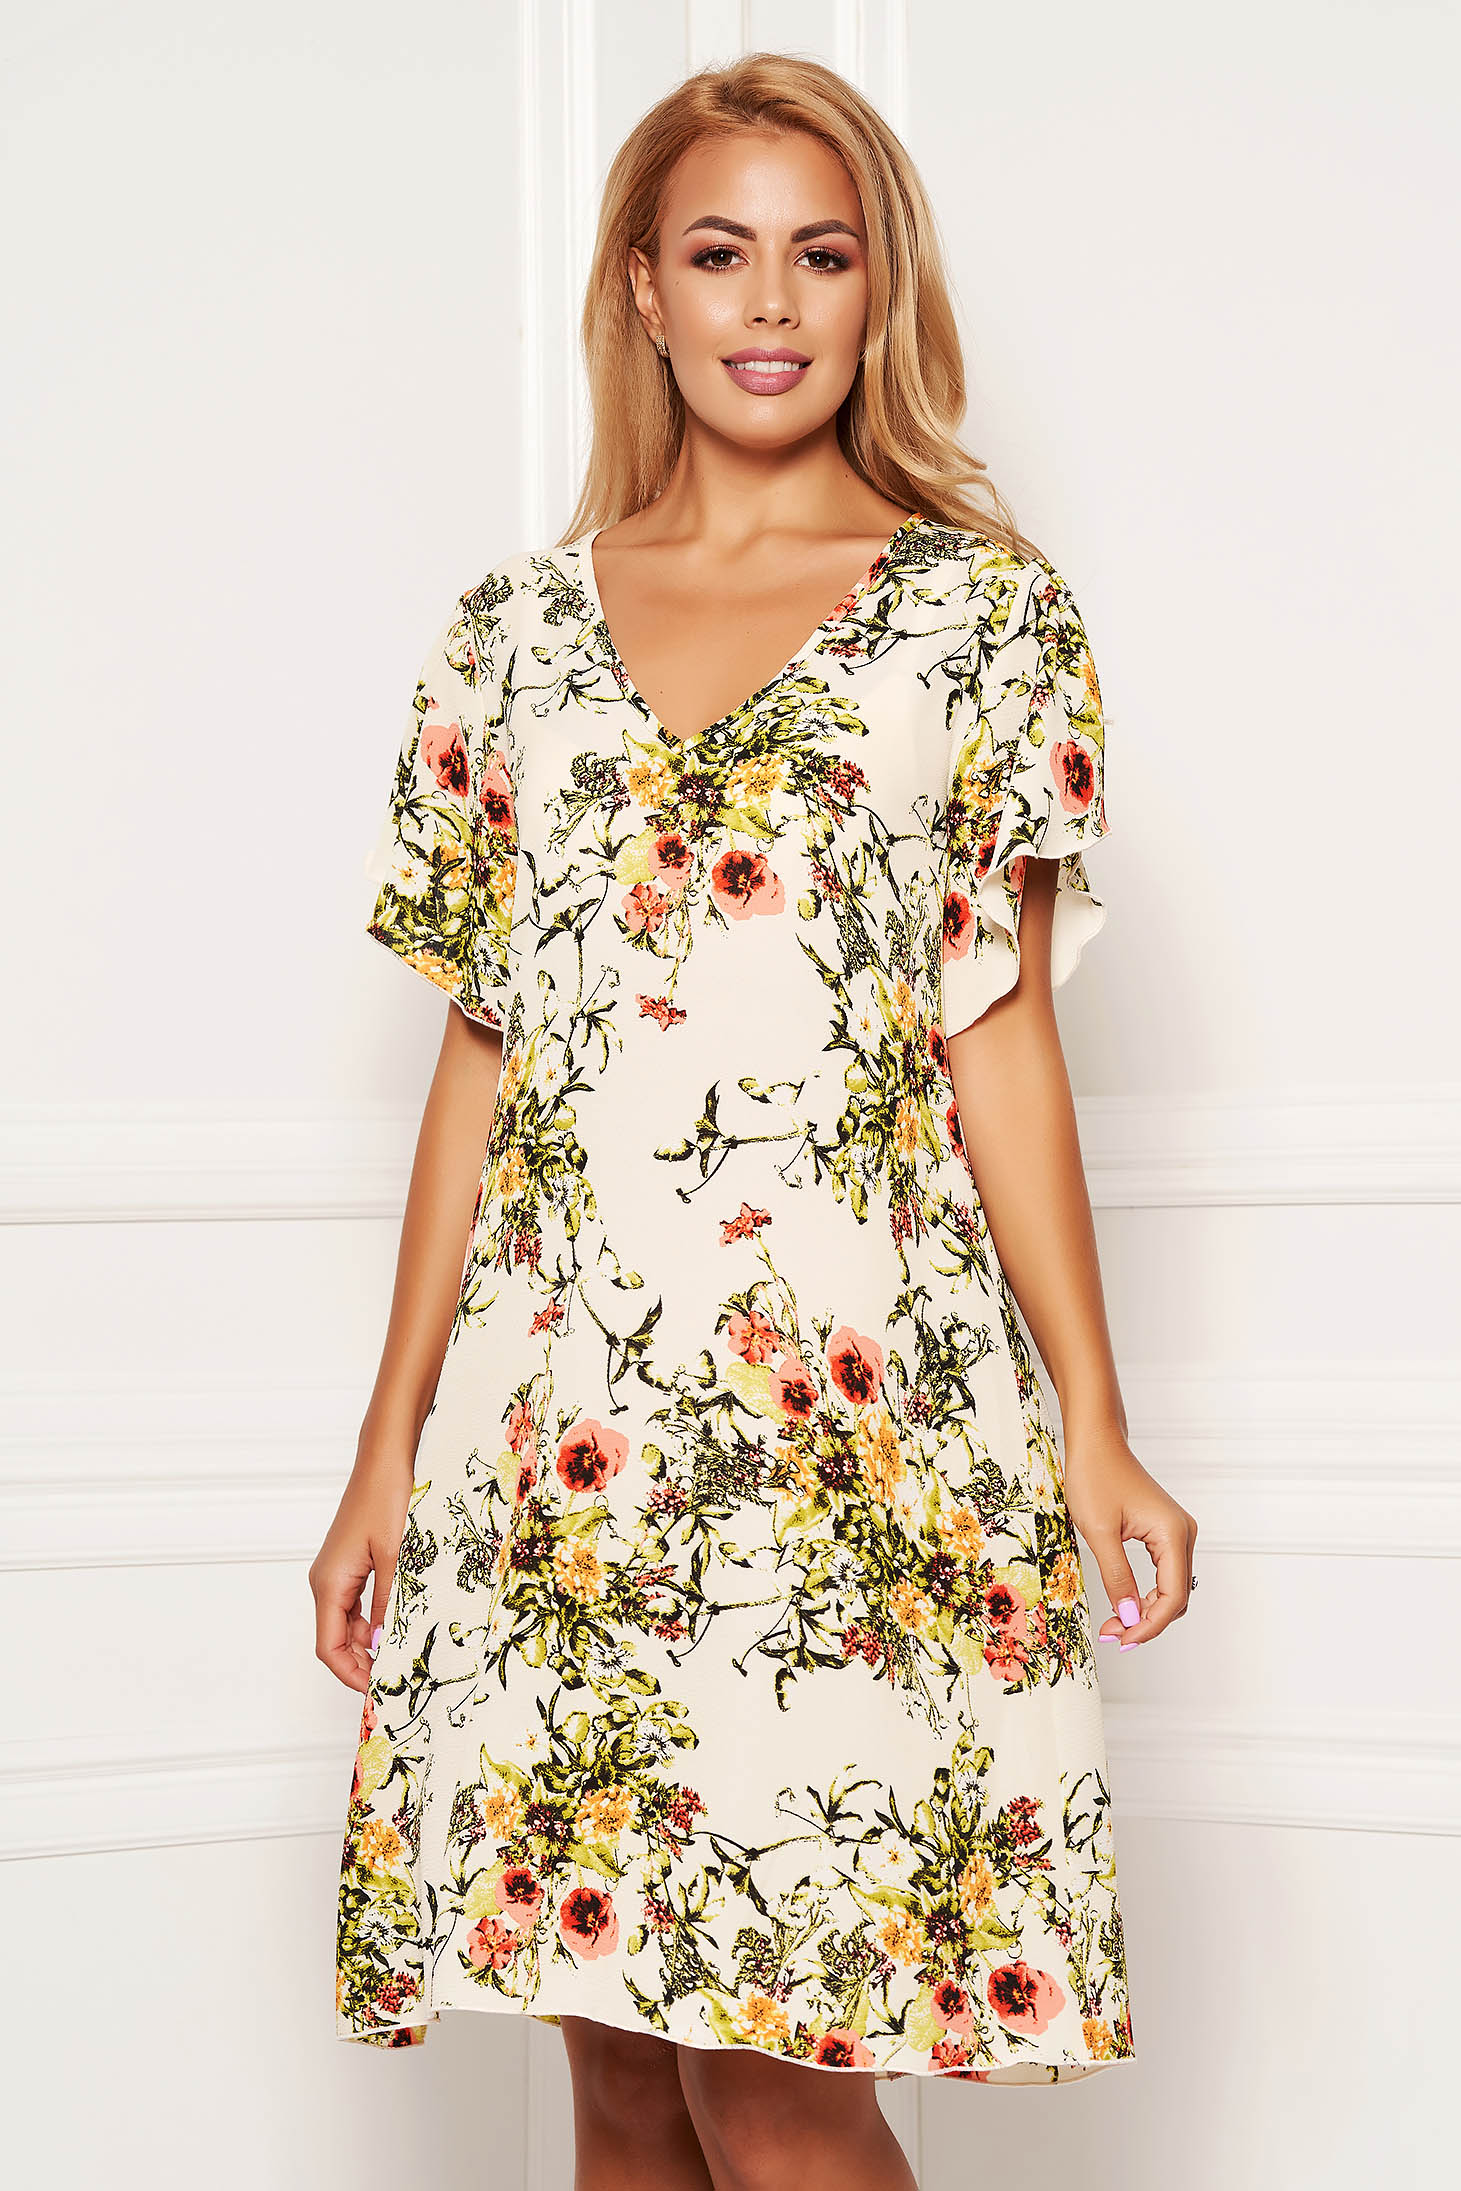 StarShinerS cream dress daily short cut a-line with floral print with butterfly sleeves